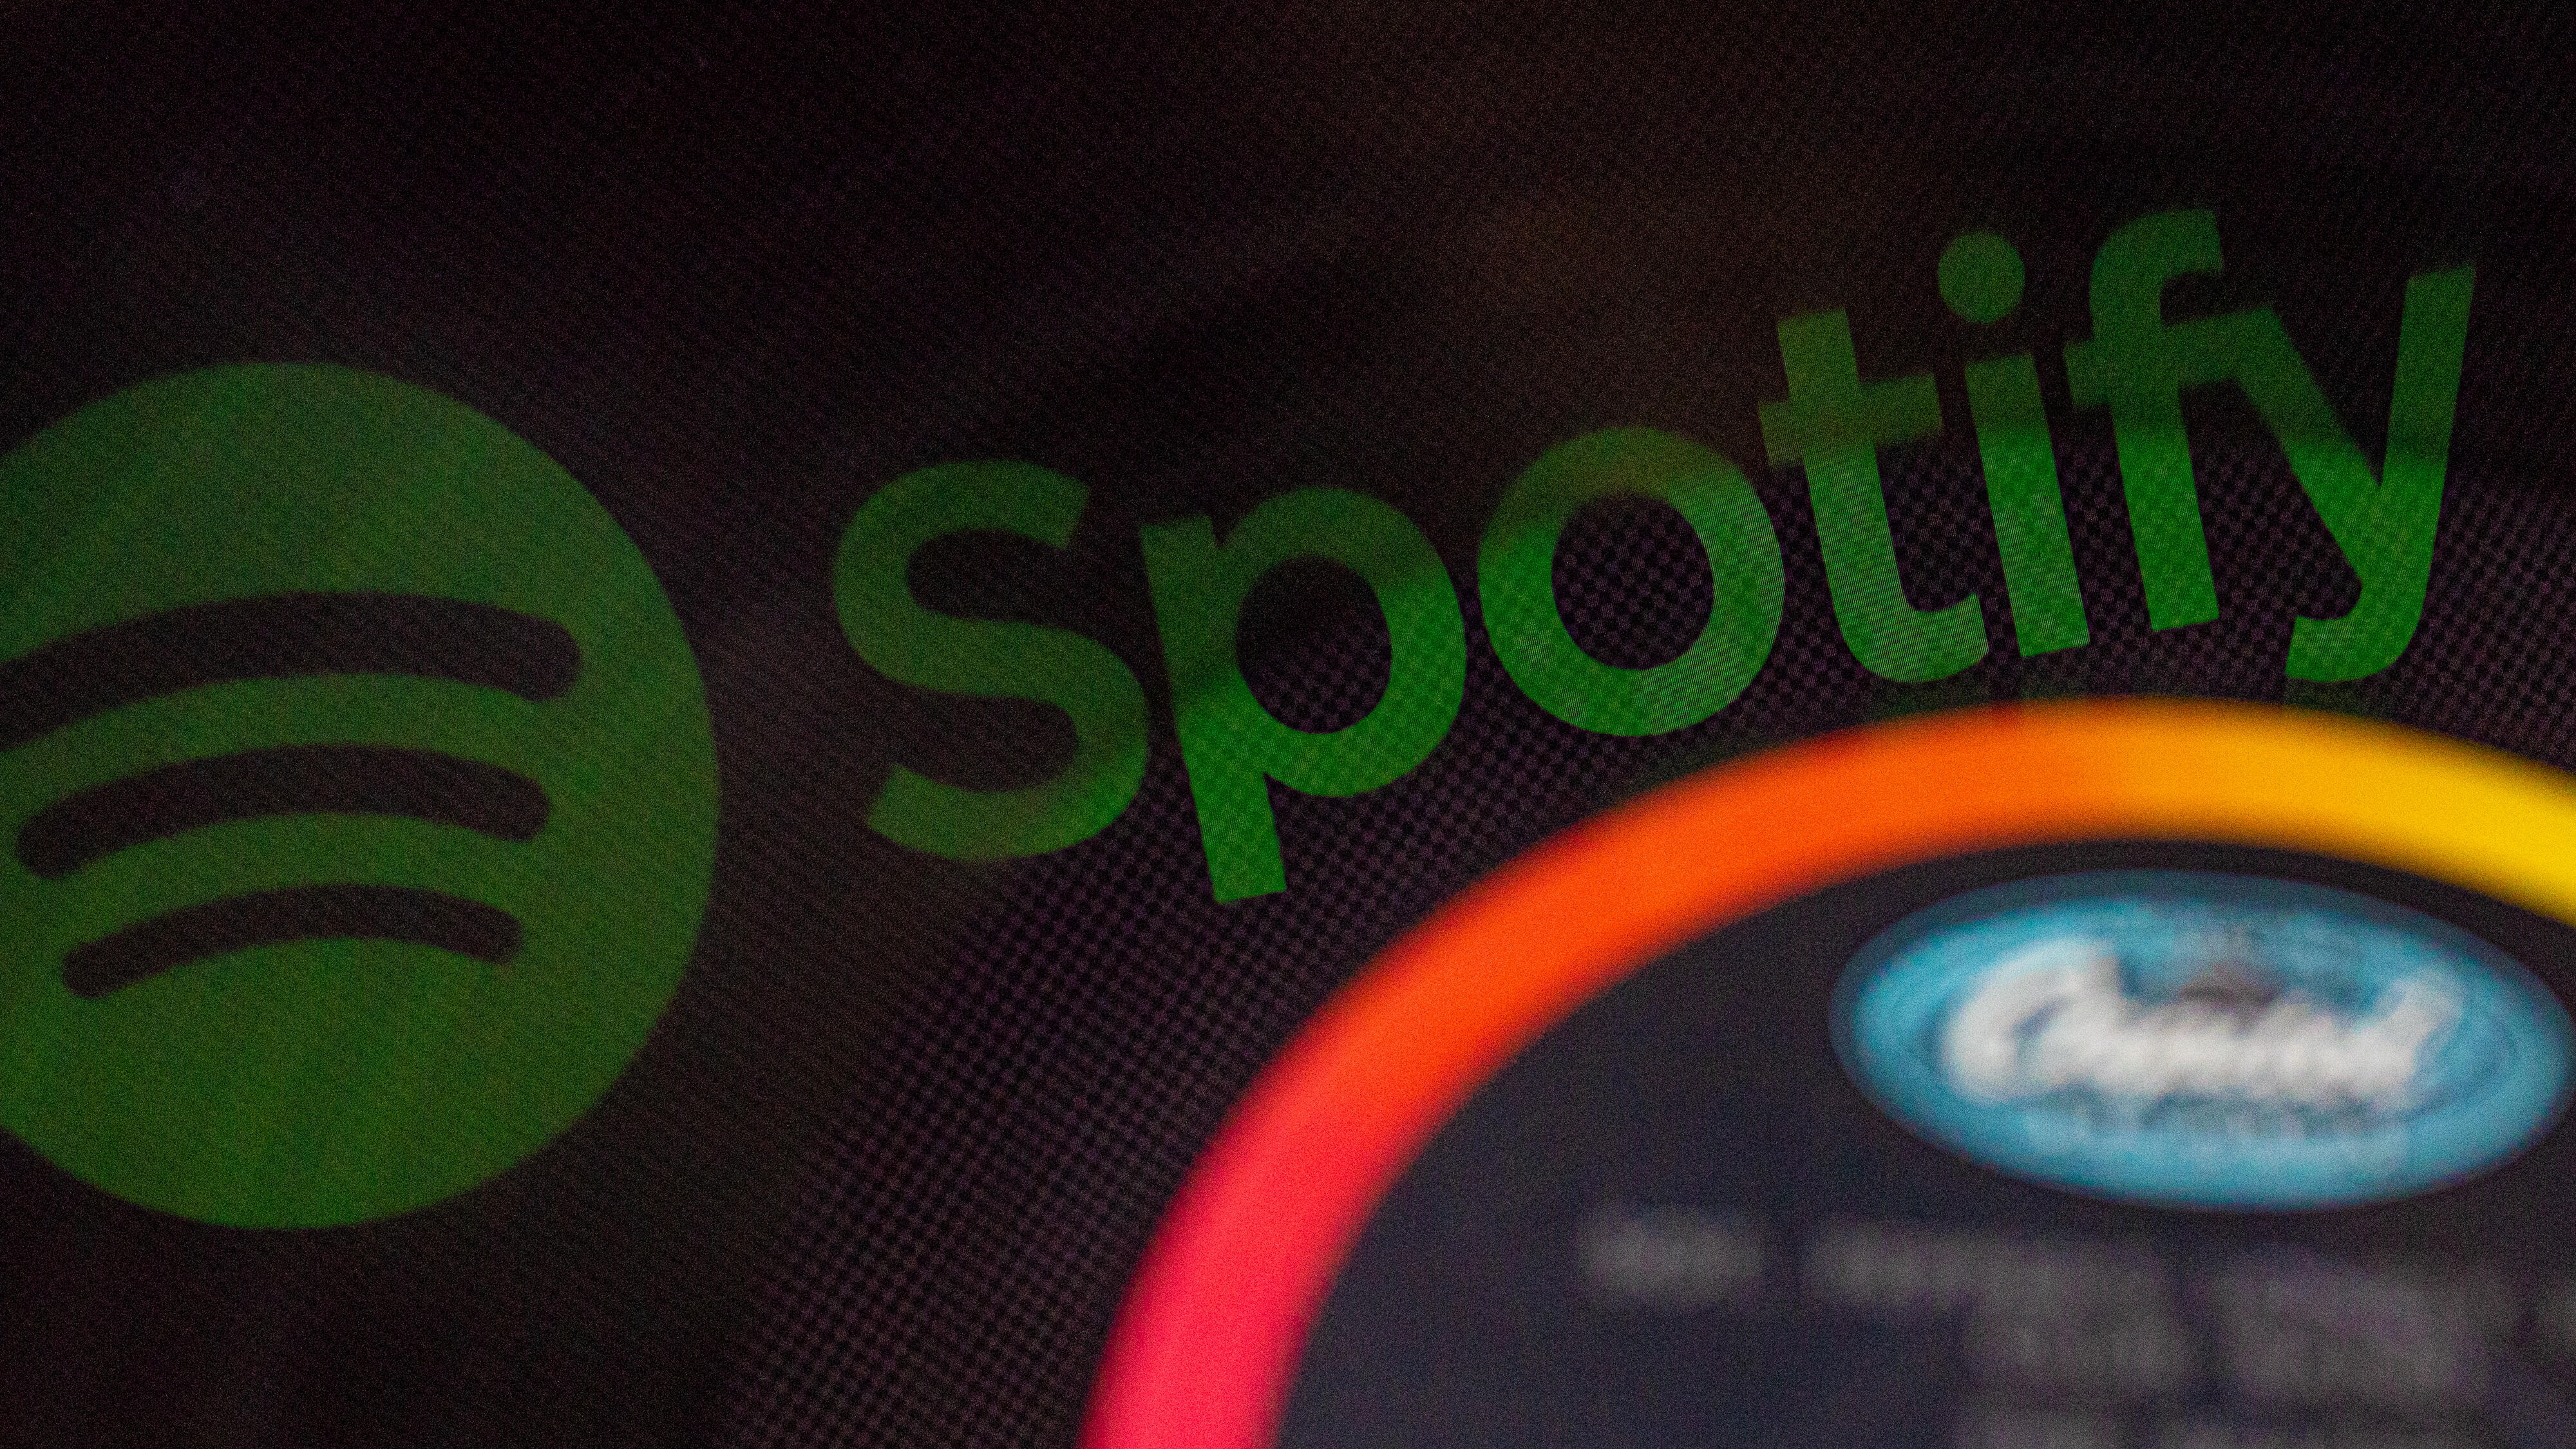 Spotify music streaming service will let employees work remotely